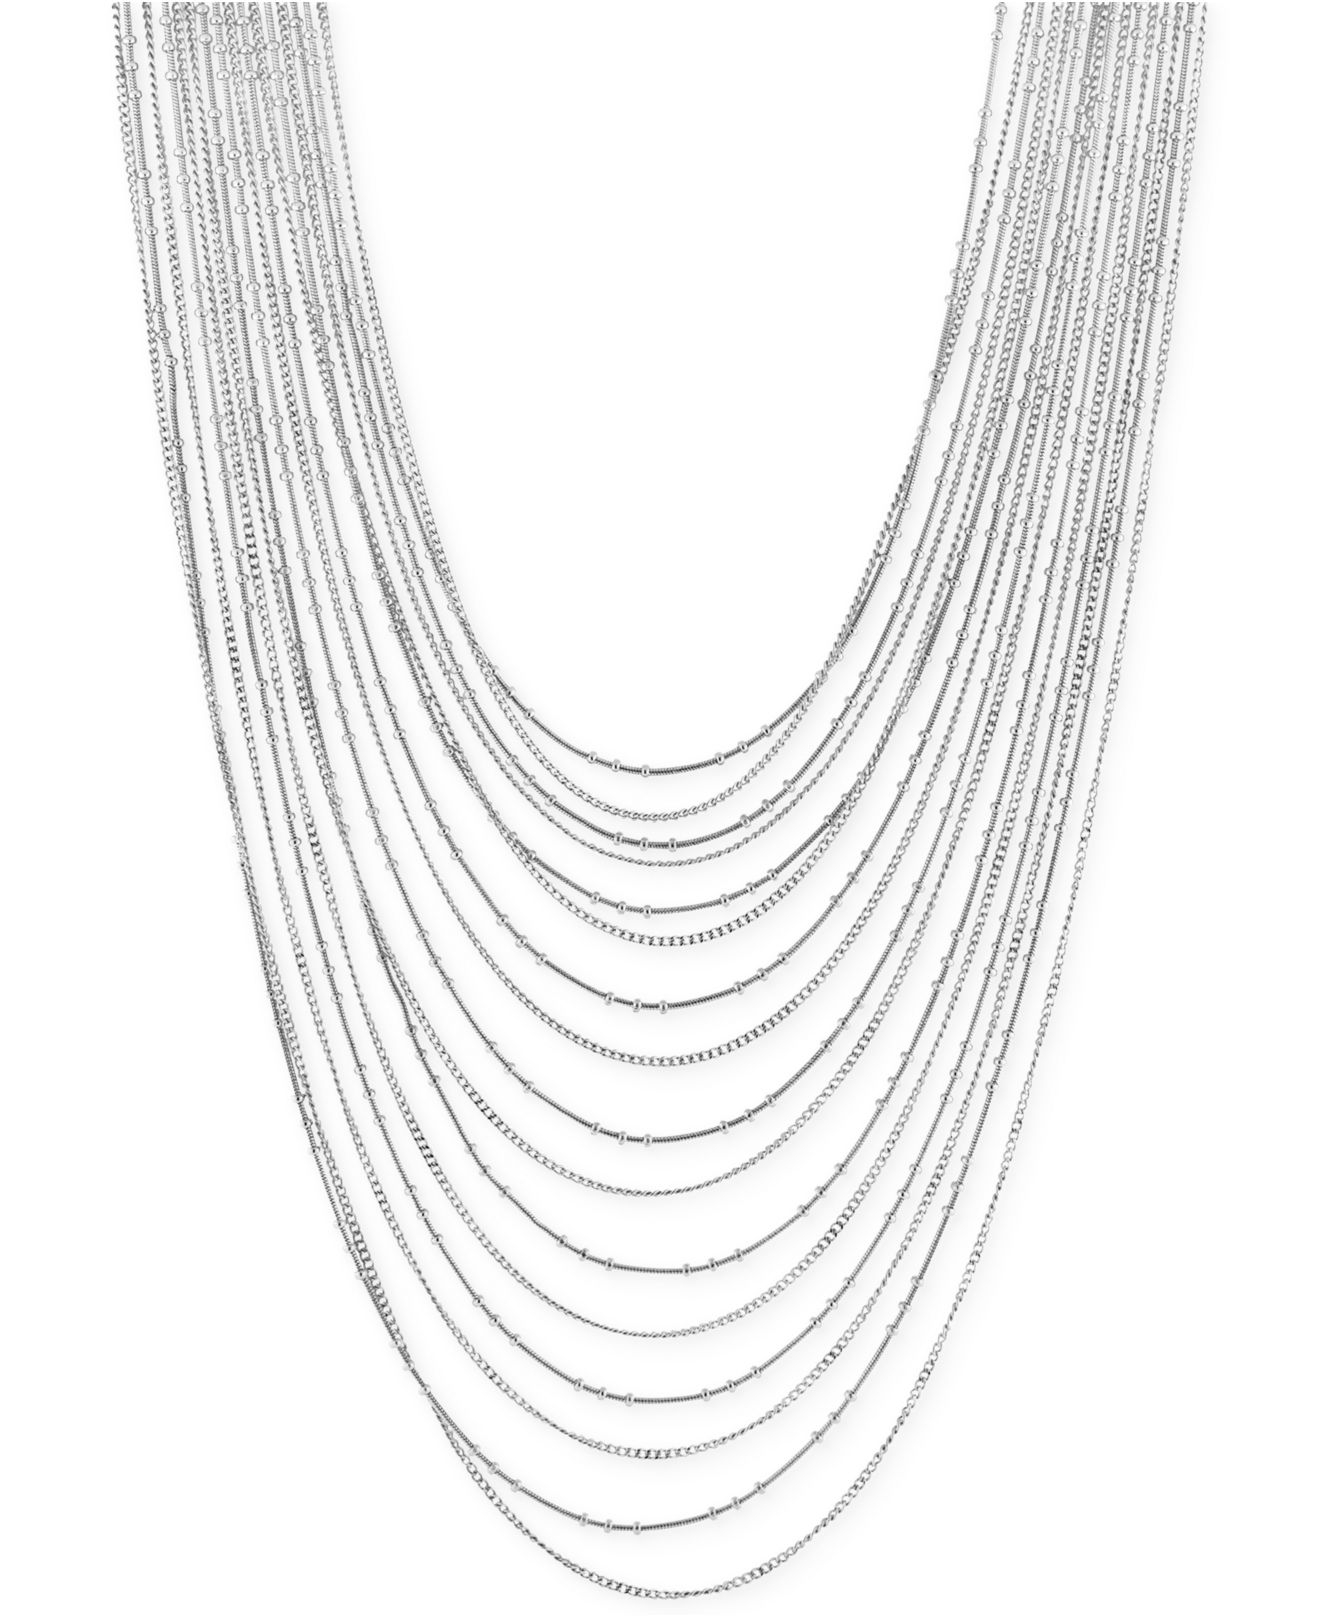 en pendants rc multi and necklace with it pearls row multirow